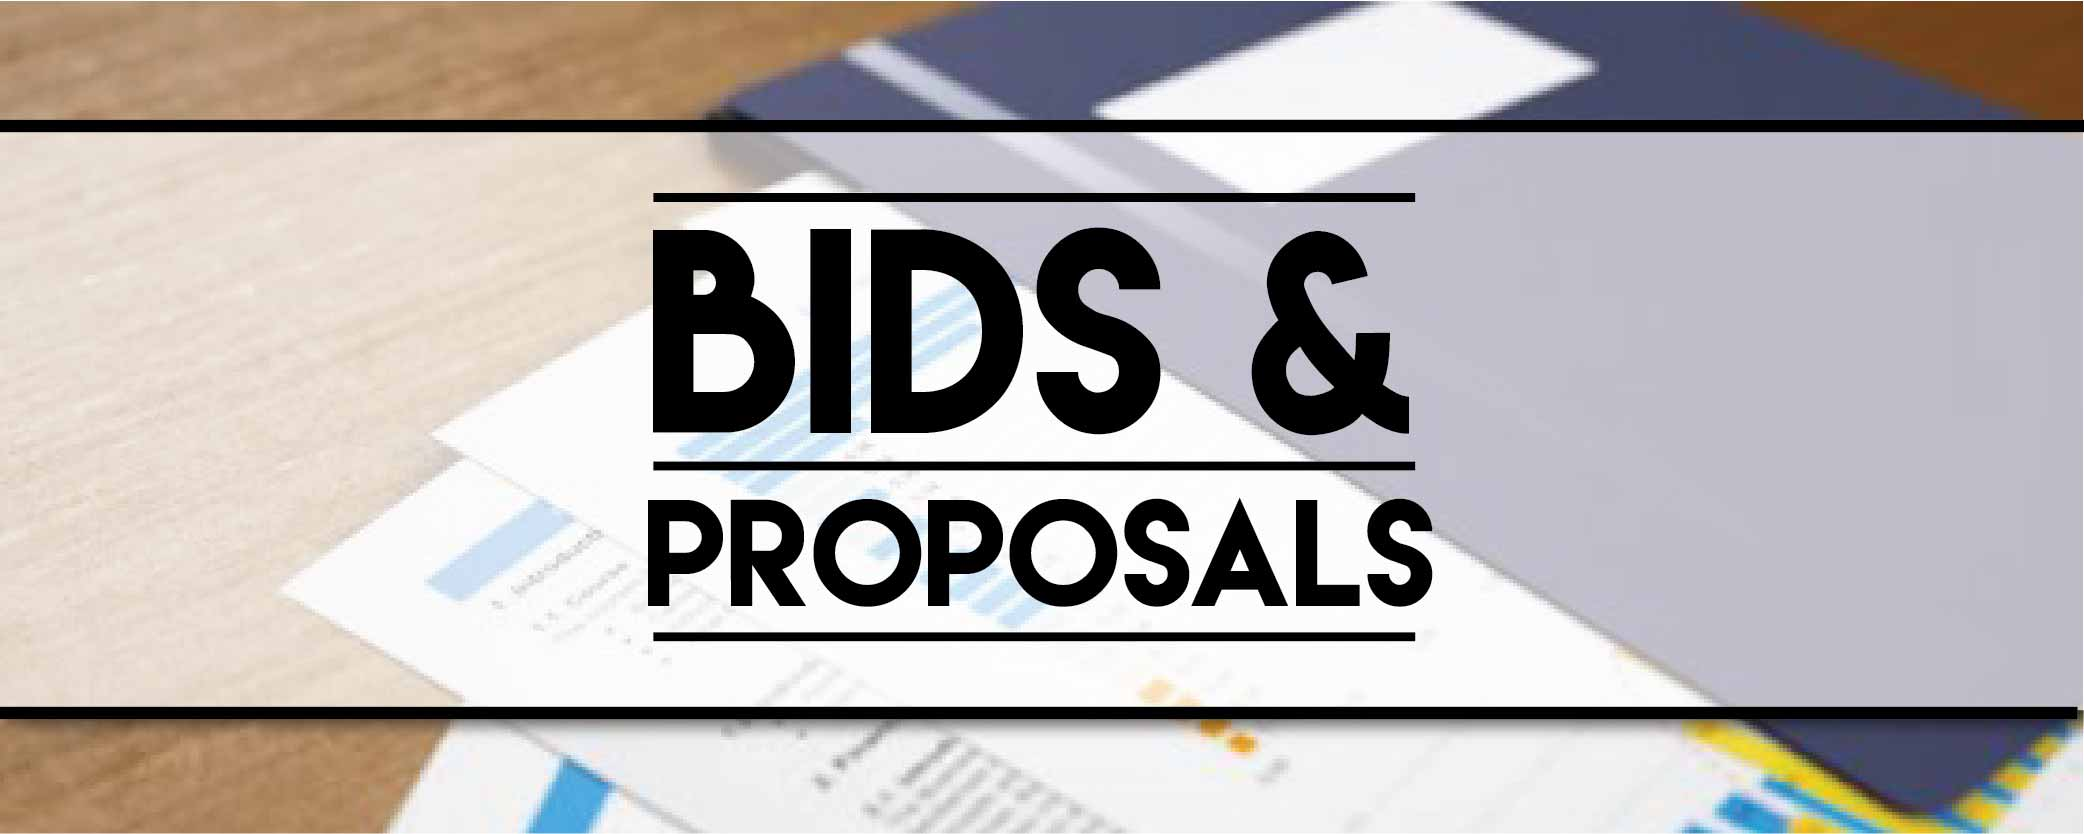 bids_and_proposals_banner-01